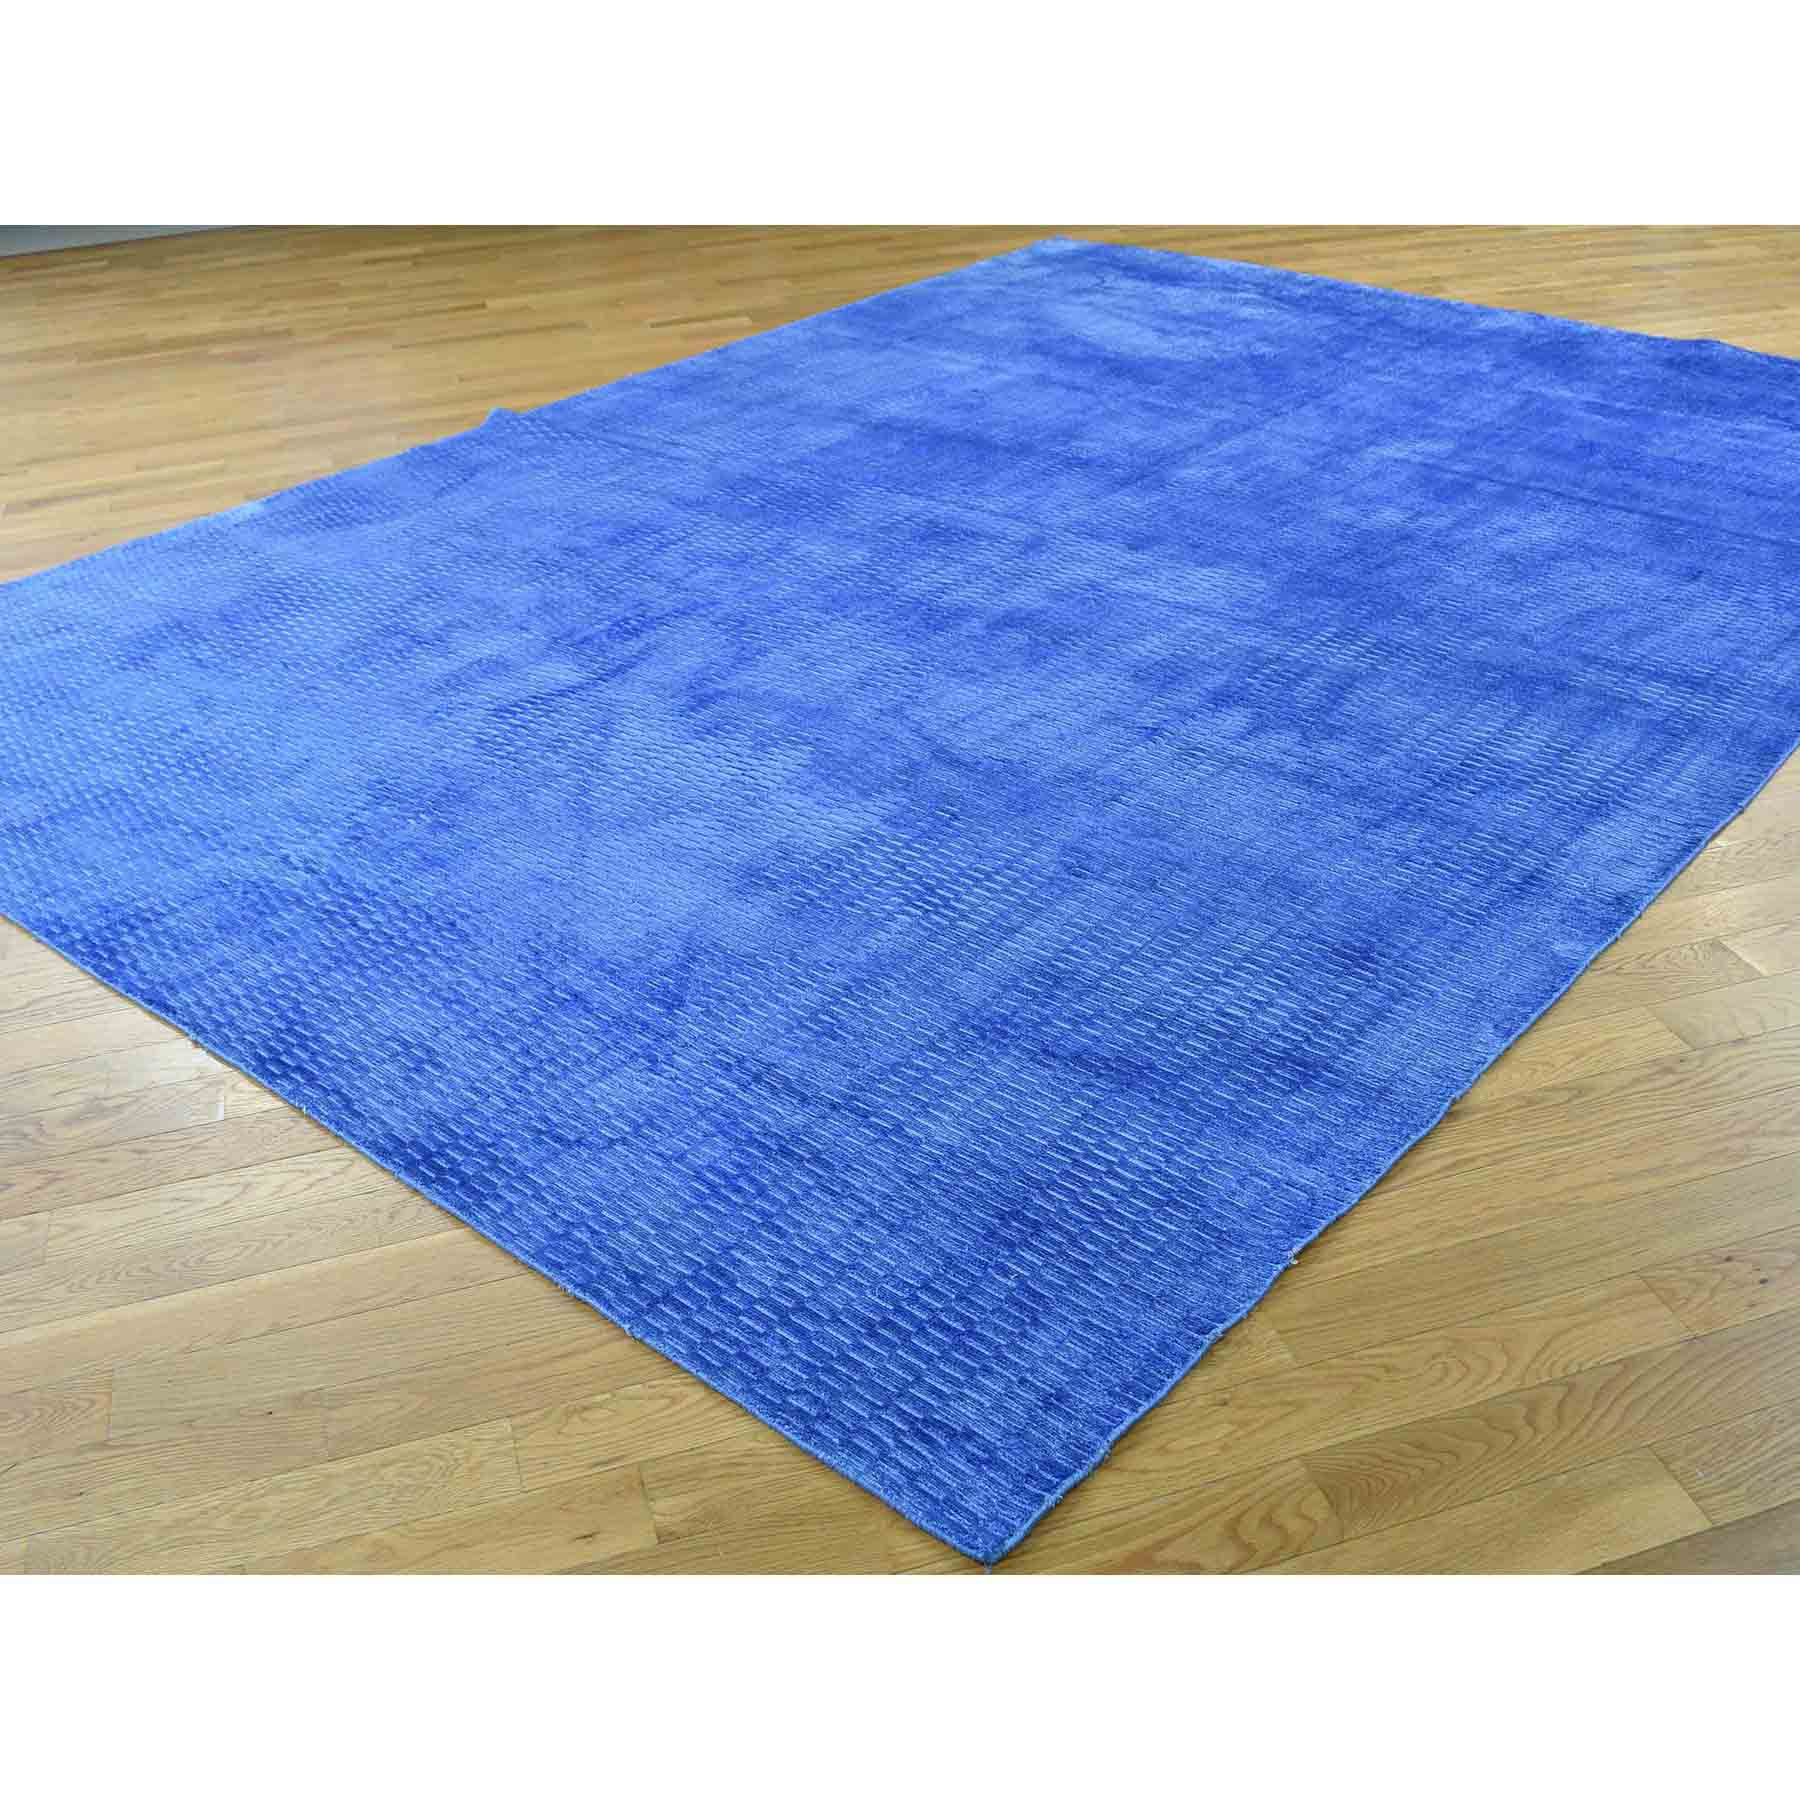 Modern-Contemporary-Hand-Knotted-Rug-165905